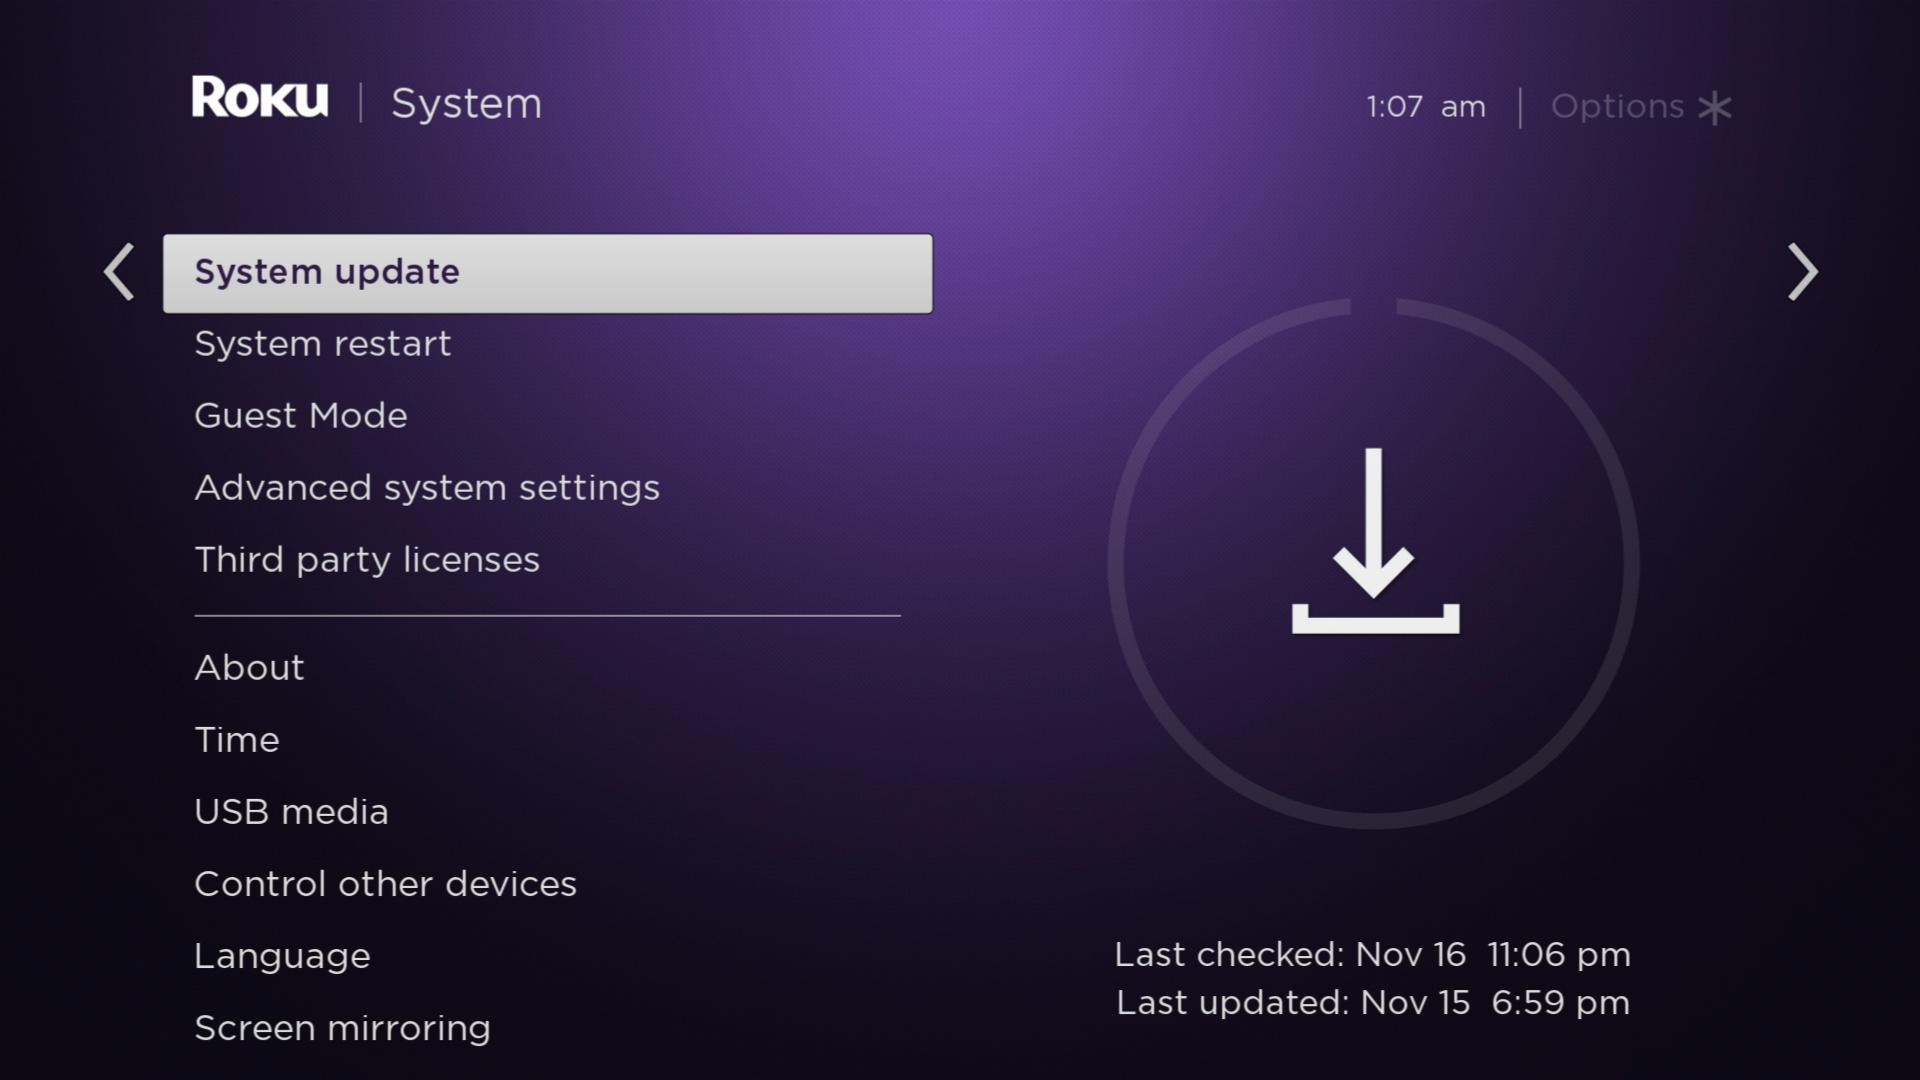 How to Update Roku Manually